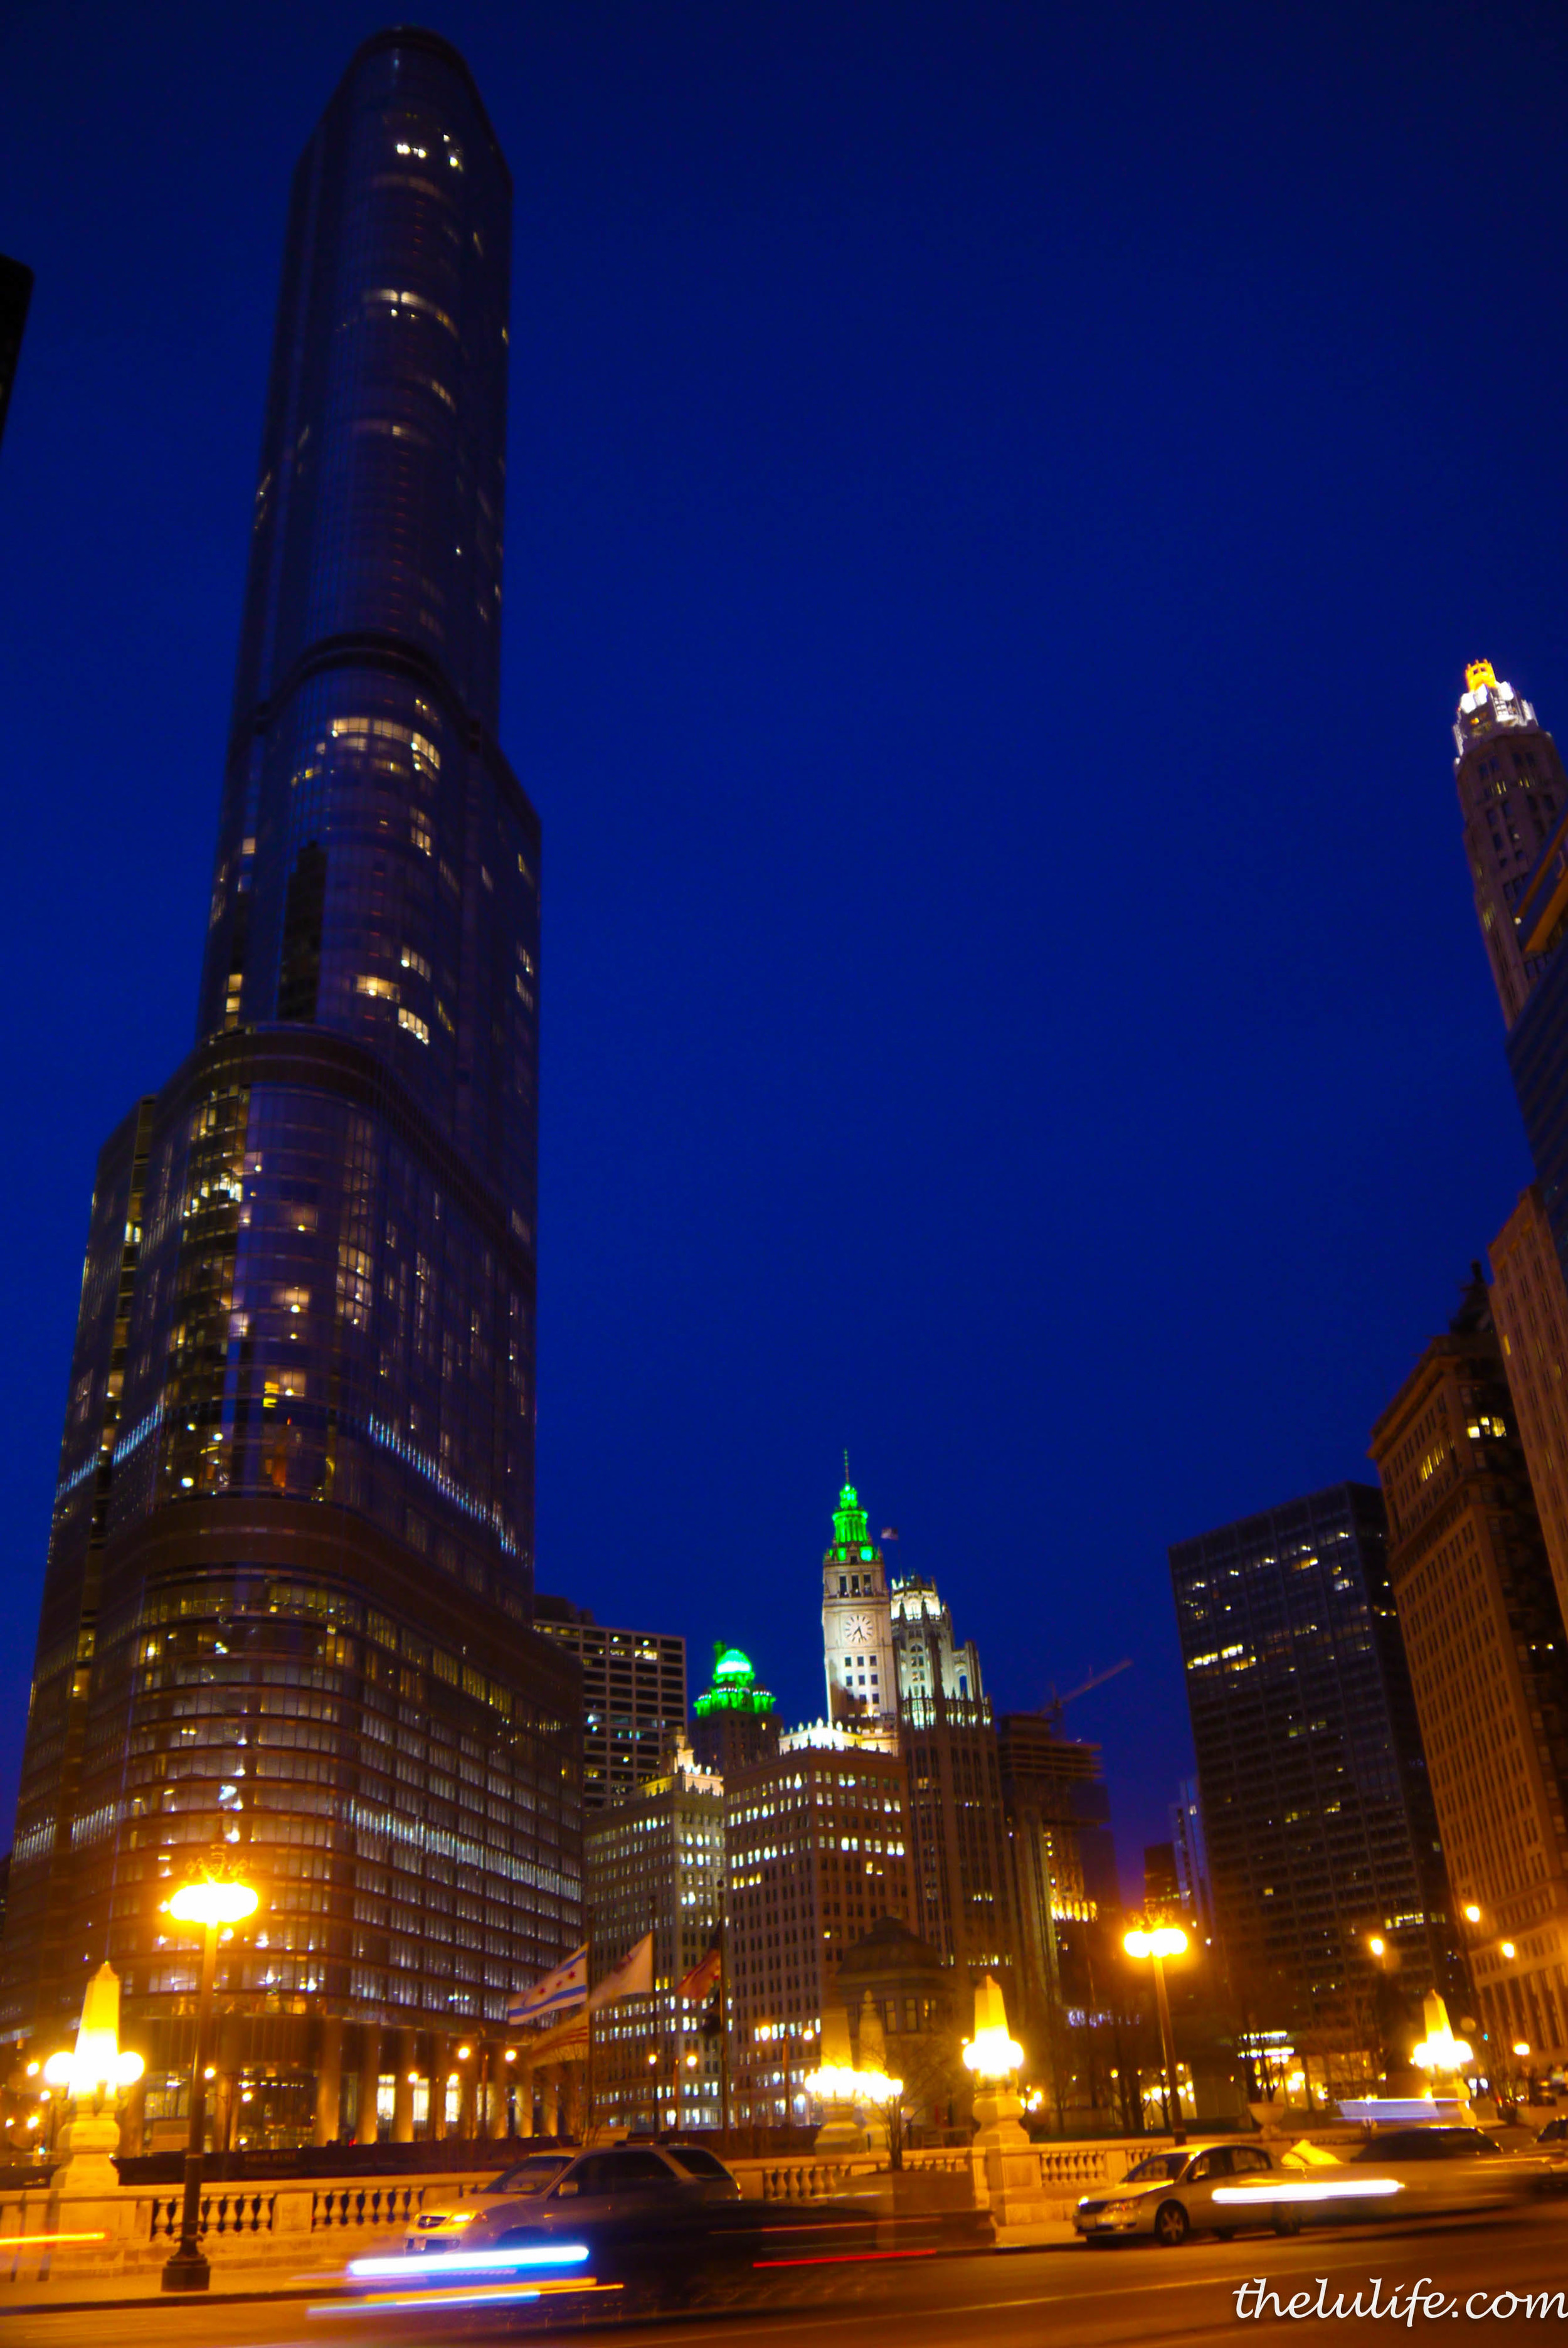 Figure 3. The green-lit domes are the Intercontinental Hotel and the Wrigley Building.